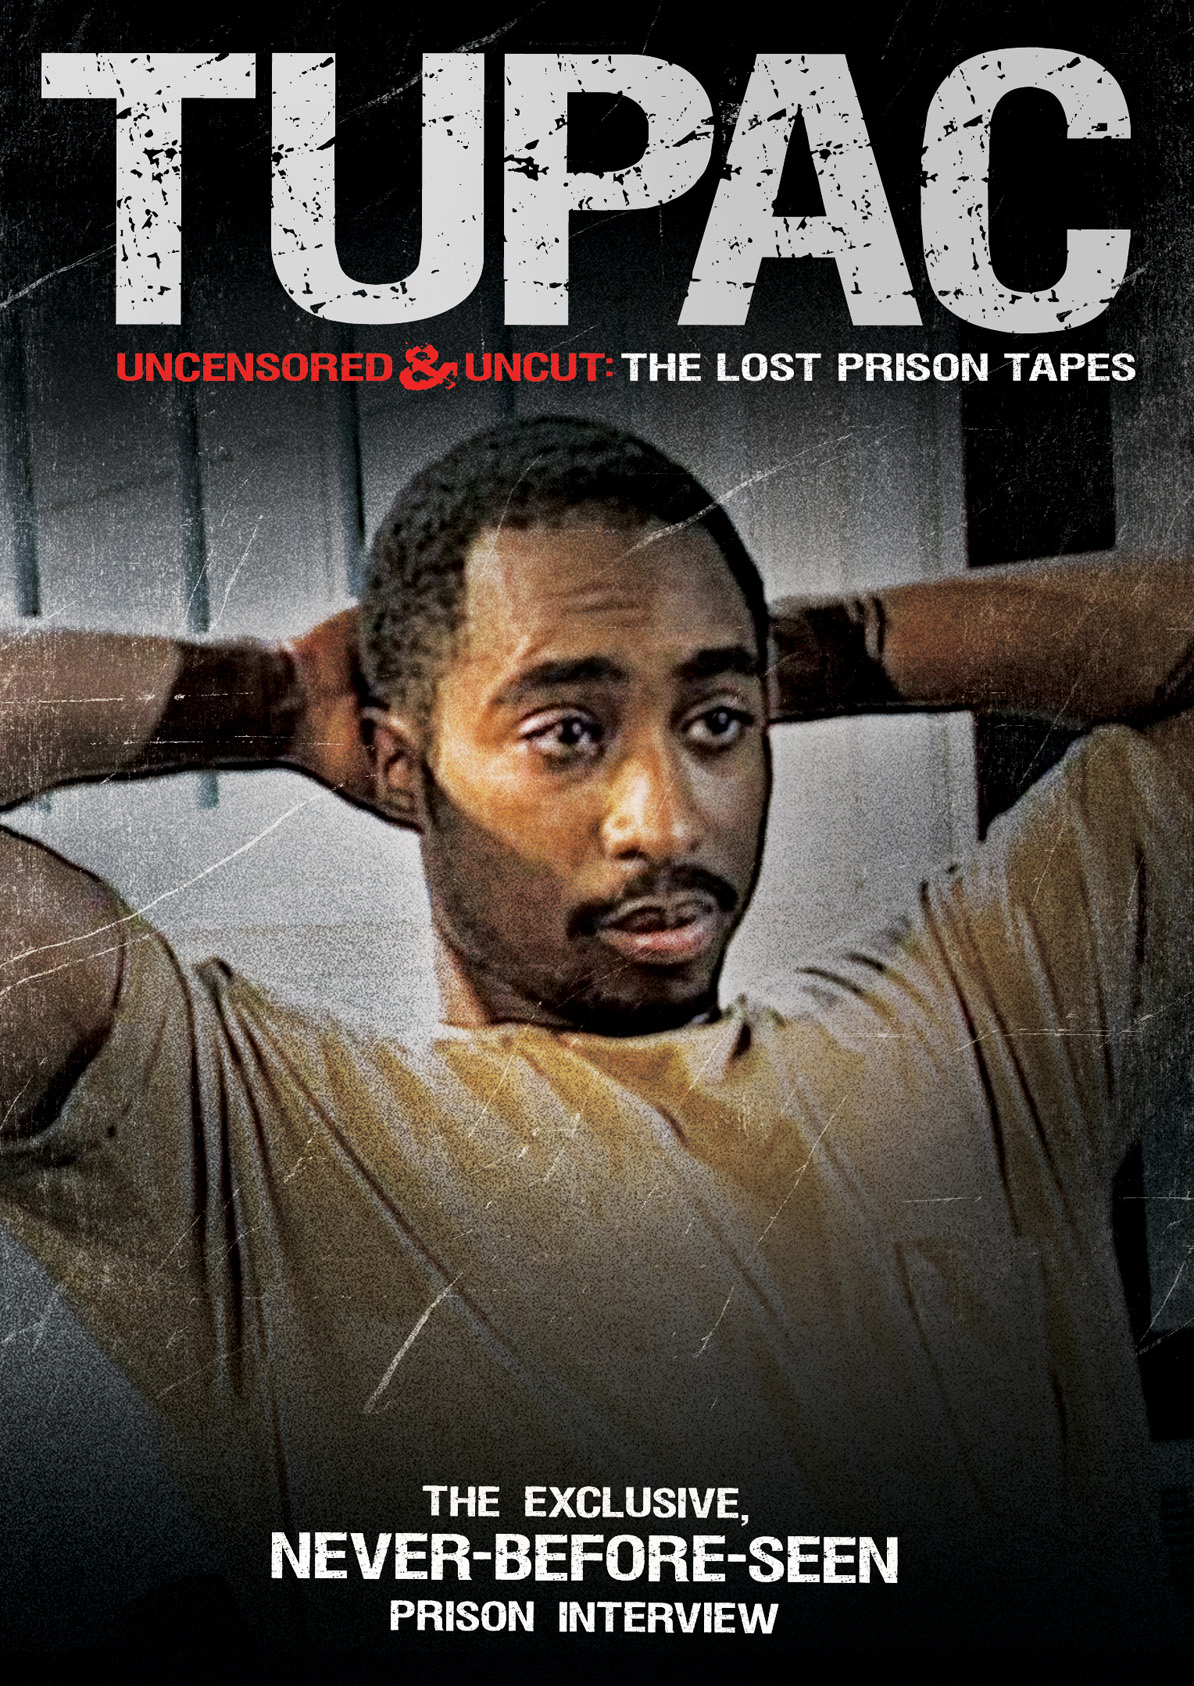 tupac the lost prison tapes dvd cover I stayed with my daughter K and her two wives Rachel and Luisa.